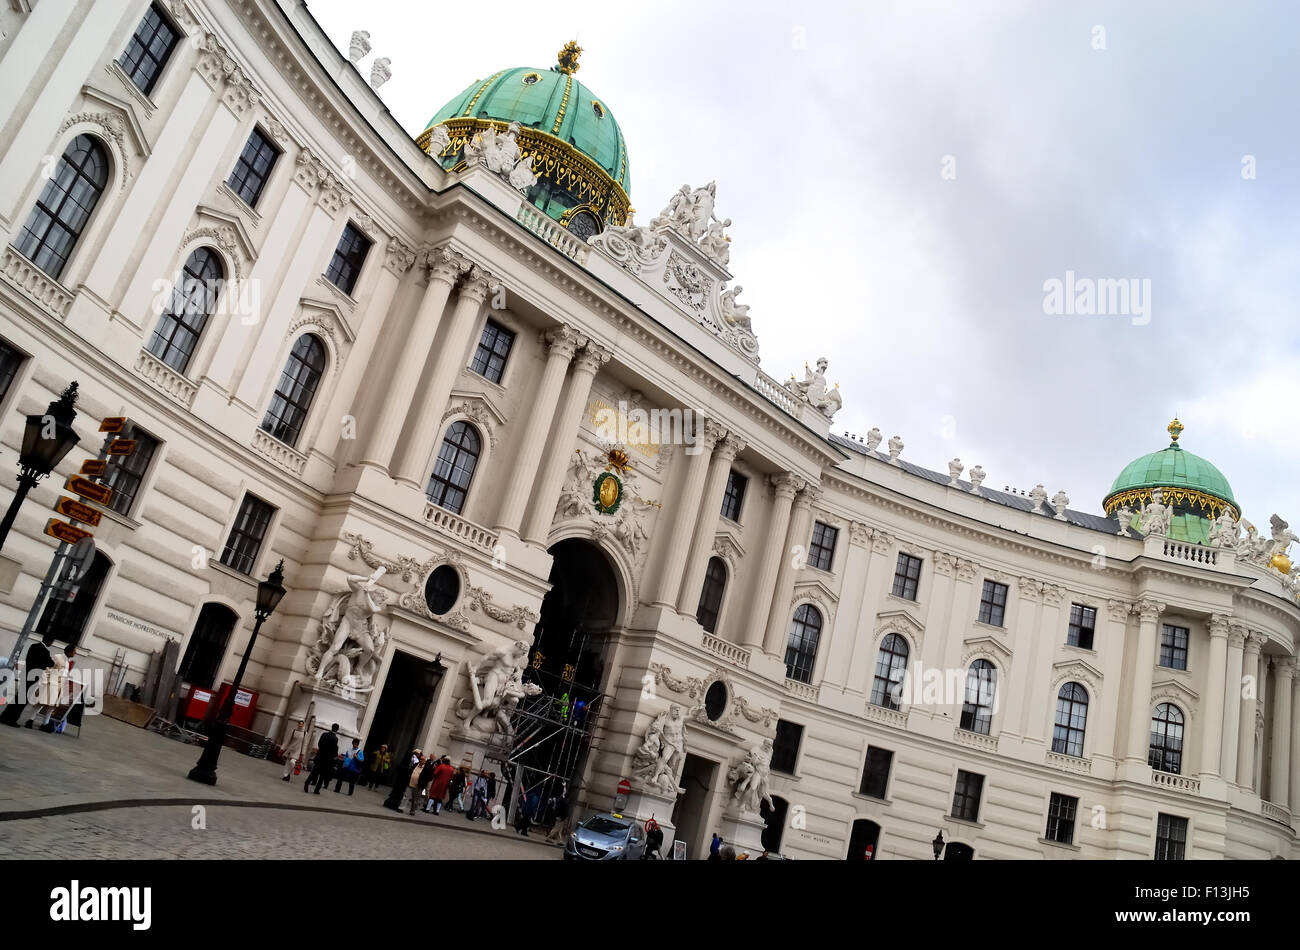 Vienna, facade of the Hofburg on Michaelerplatz. Hofburg Palace is the former imperial palace in the centre of Vienna. - Stock Image